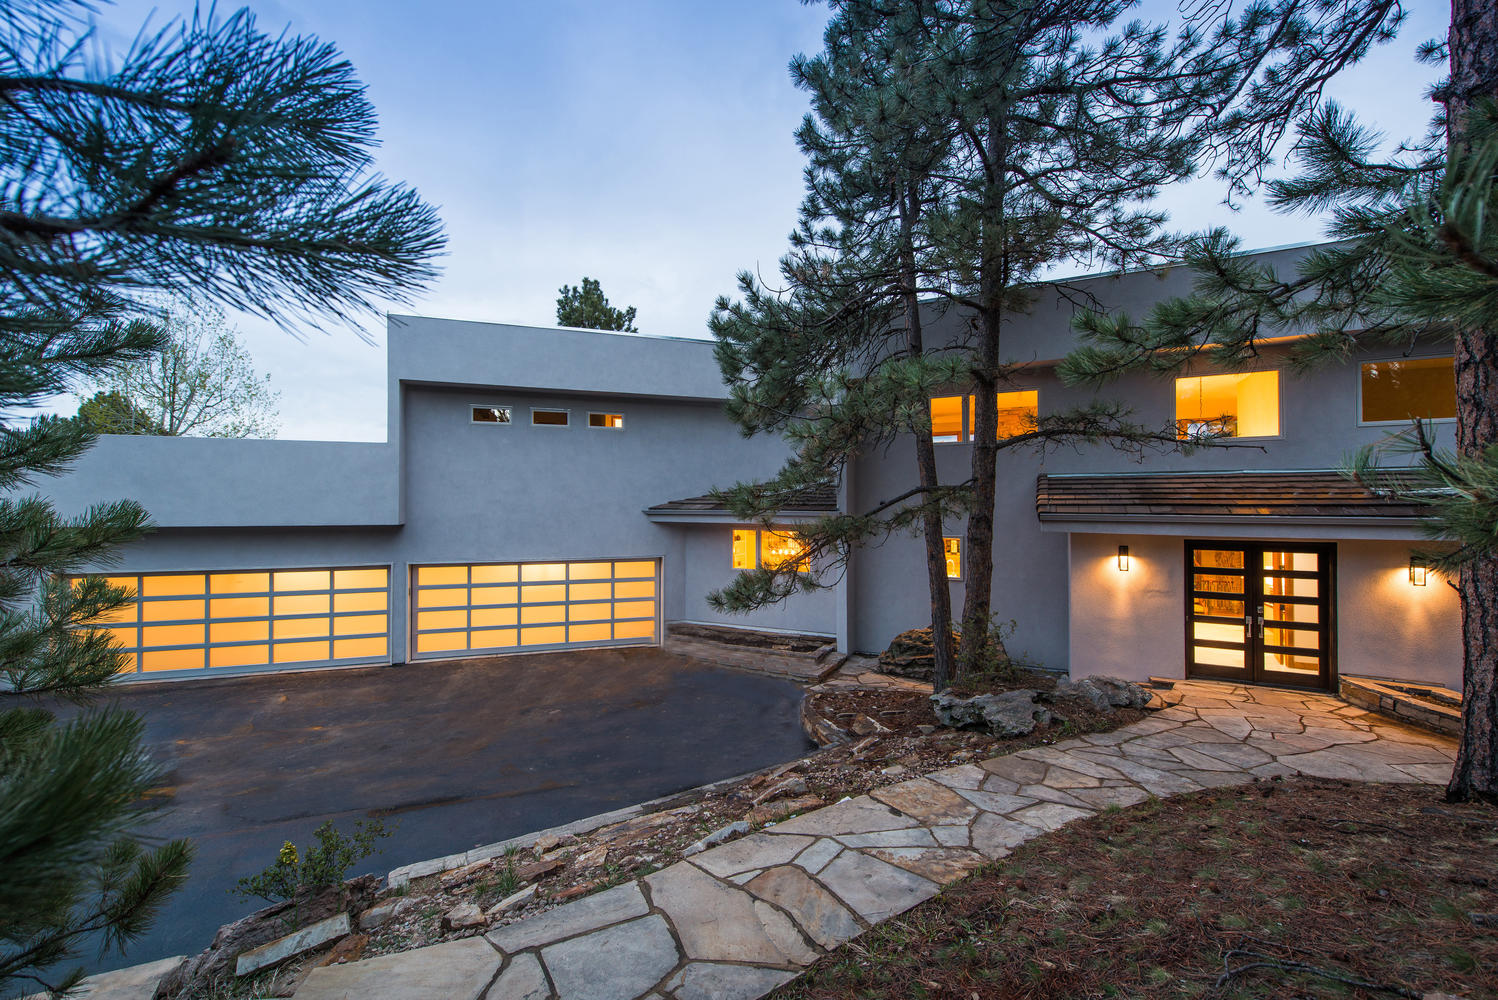 Single Family Home for Active at Incredible Custom Home Has Timeless Architectural Lines 1992 Columbine Court Golden, Colorado 80401 United States